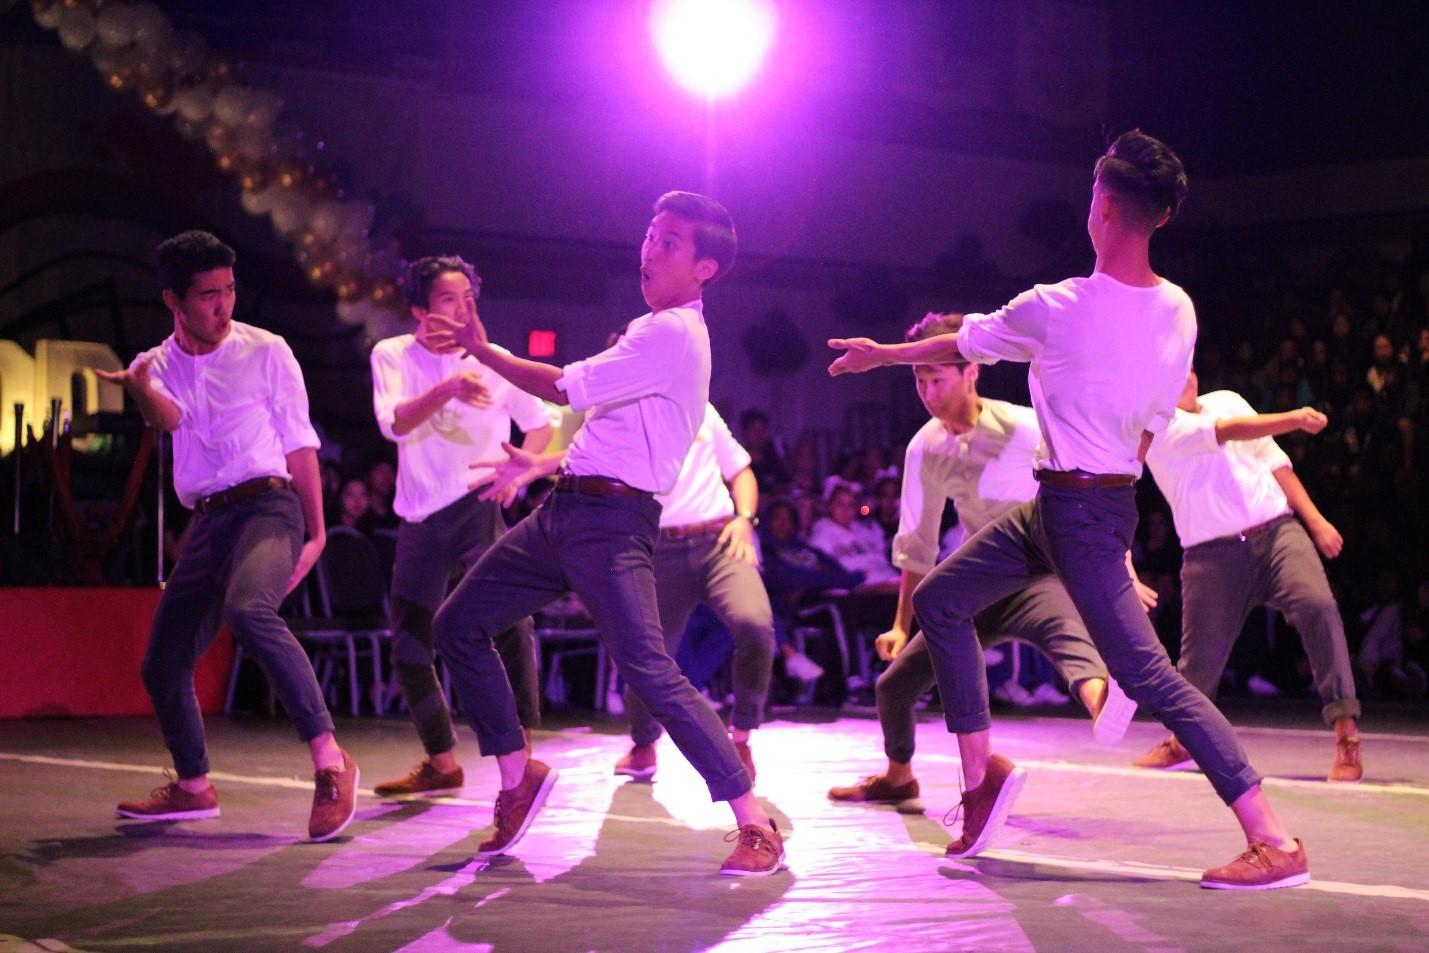 The Diamond Bar All Male Dance Team performs its dance routine at the performing arts rally in the gym on Feb. 17.